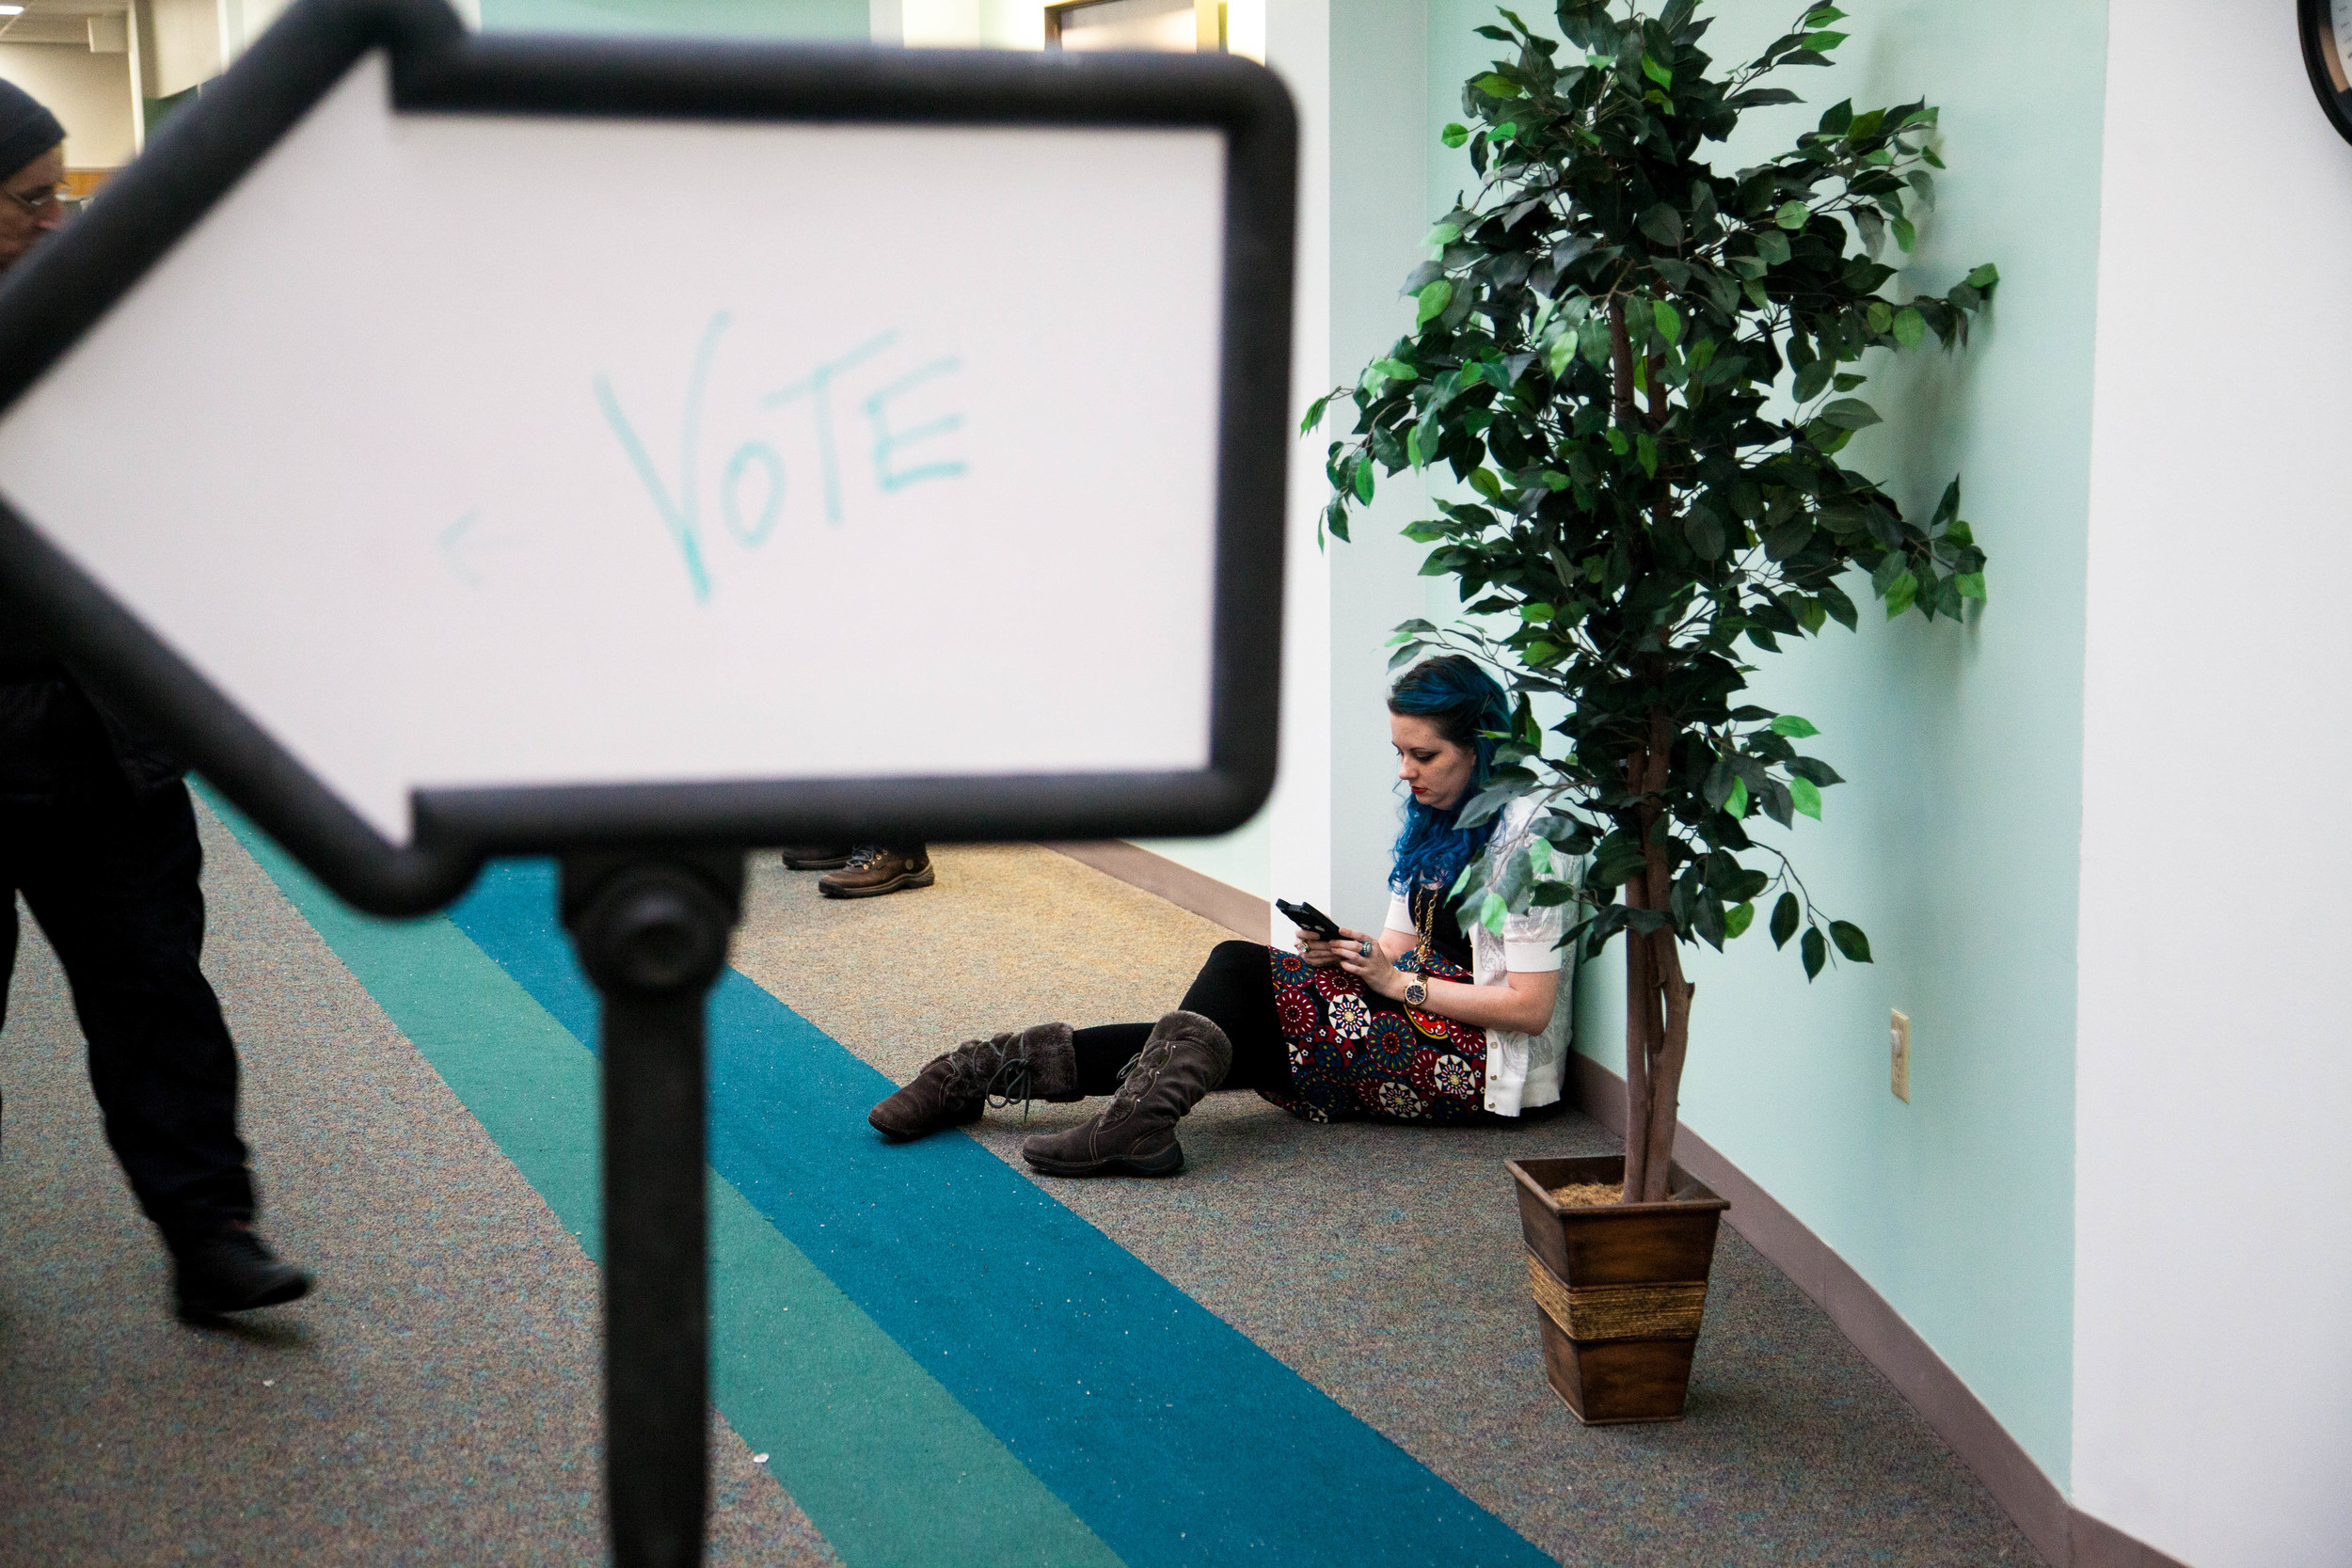 Manchester, NH, Feb. 9, 2016 - Diana Freshette, of Manchester, waits until the line shortens to vote at a polling station at the Manchester Health Department. Photo by Alexandra Wimley